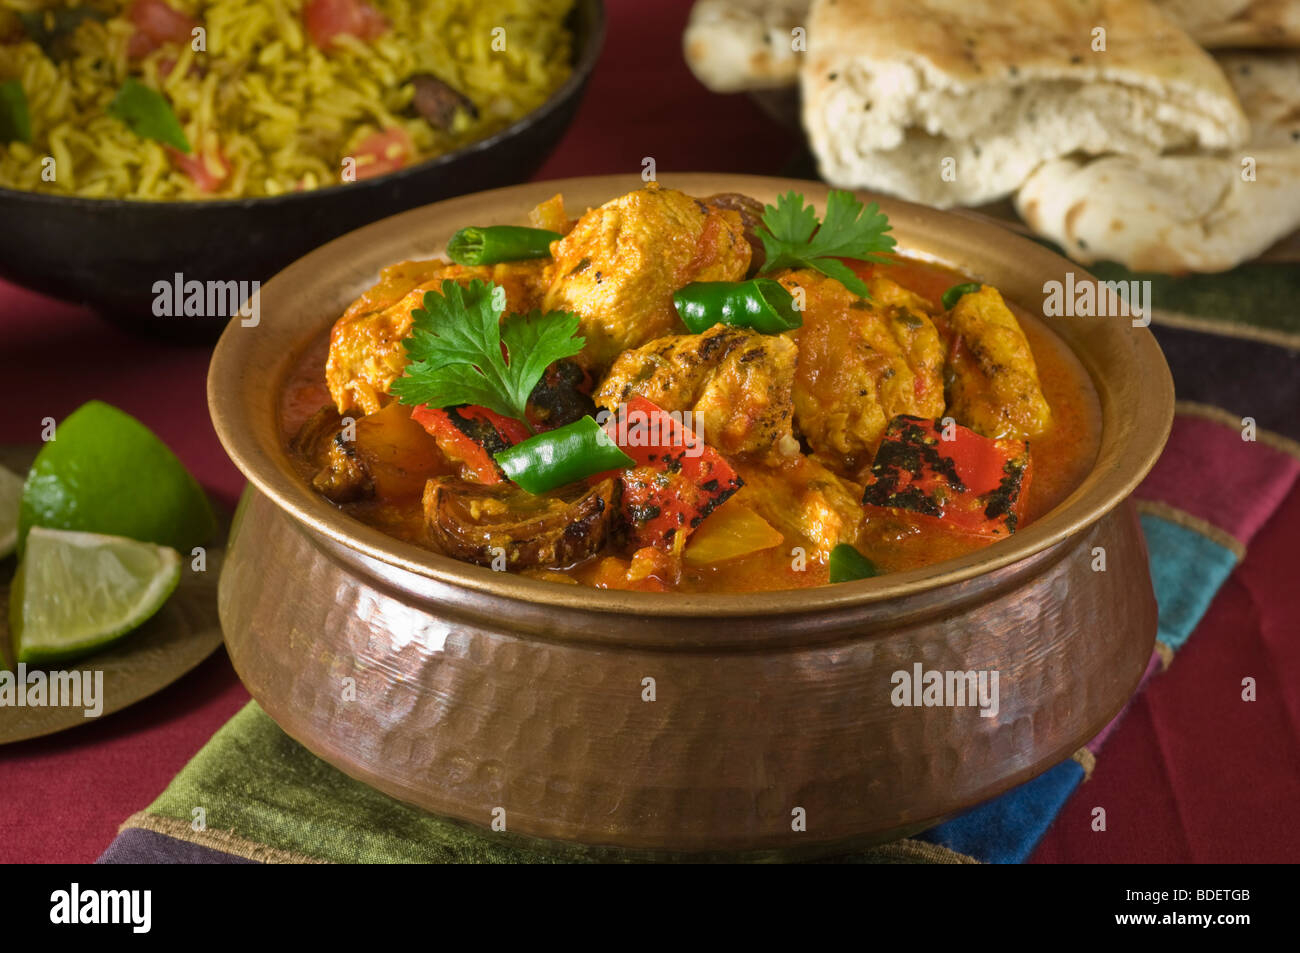 Chicken jalfrezi india south asia food stock photo 25527499 alamy chicken jalfrezi india south asia food forumfinder Choice Image